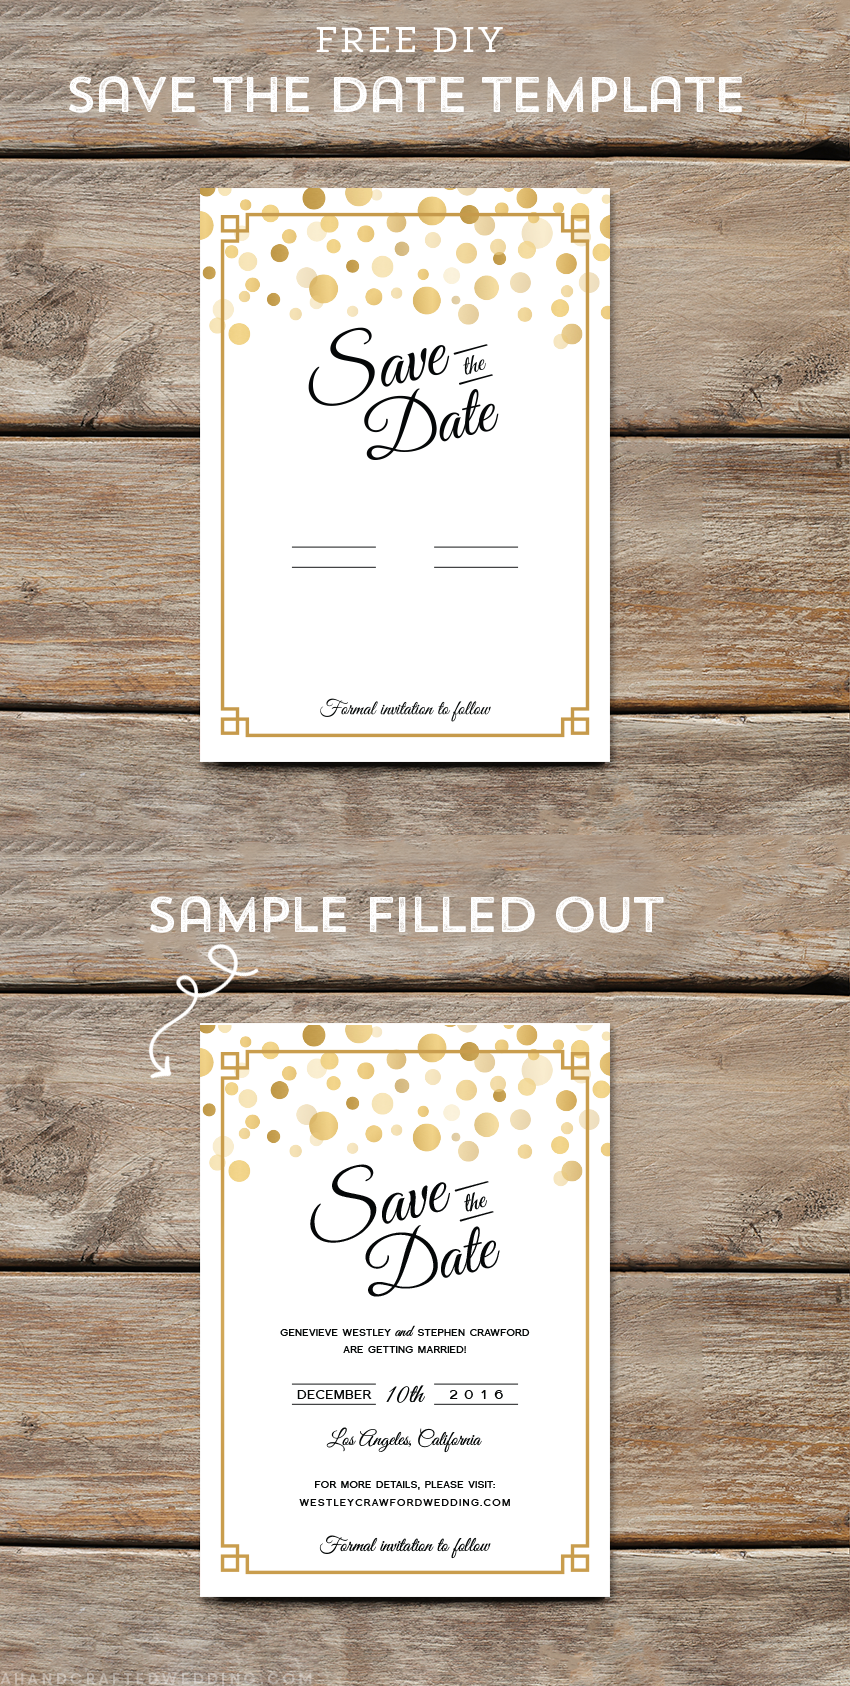 Modern Diy Save The Date Free Printable Weddings Pinterest Diy